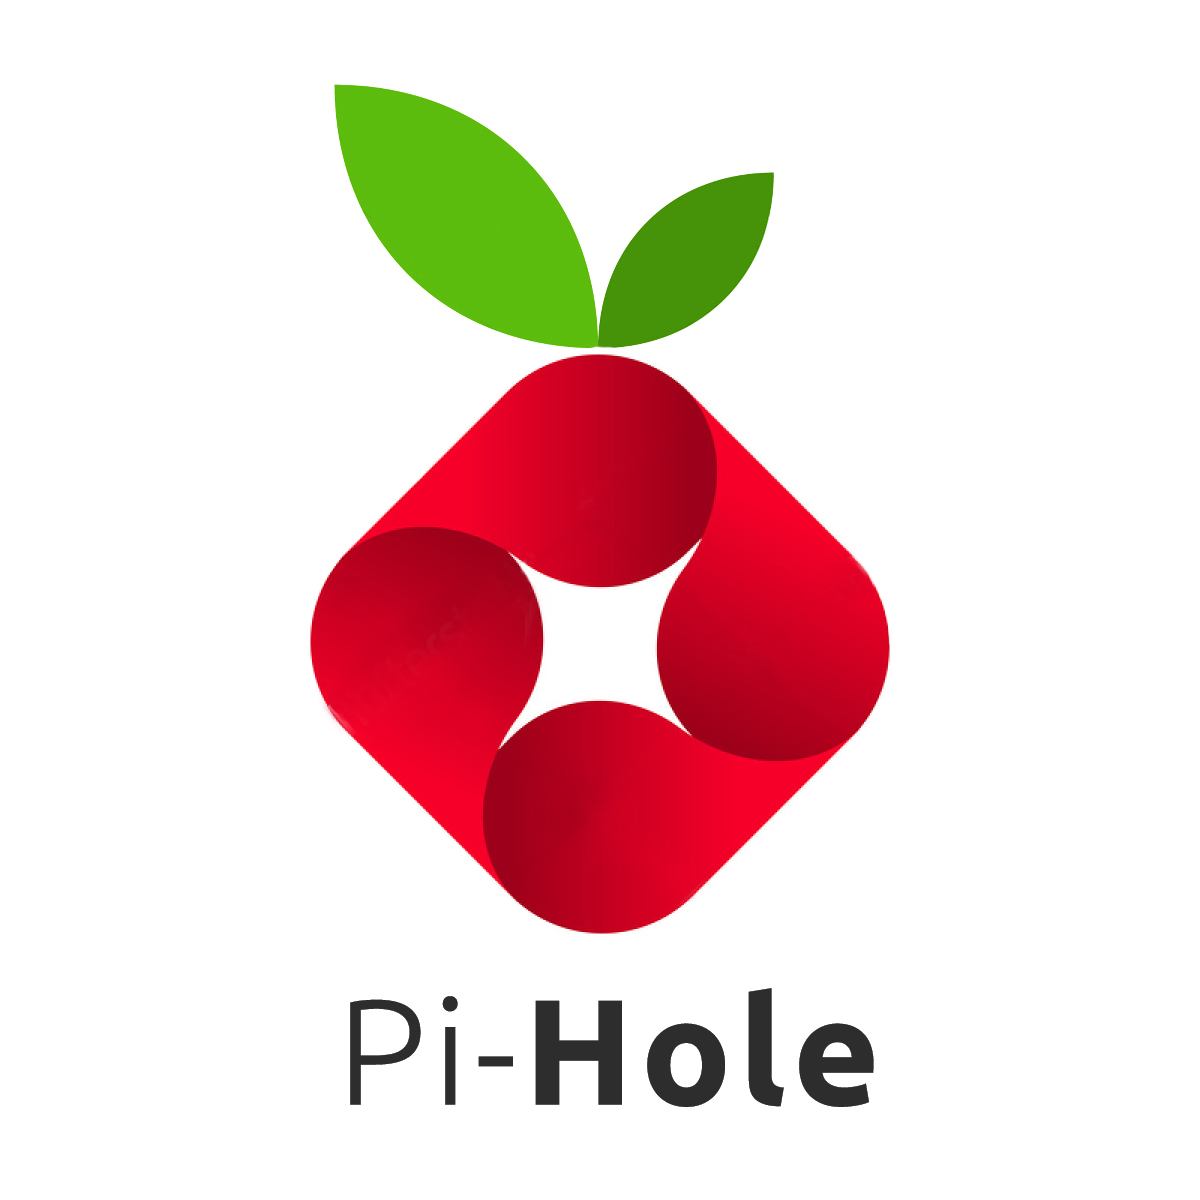 Pi-hole vortex2 – Pi-hole®: A black hole for Internet advertisements